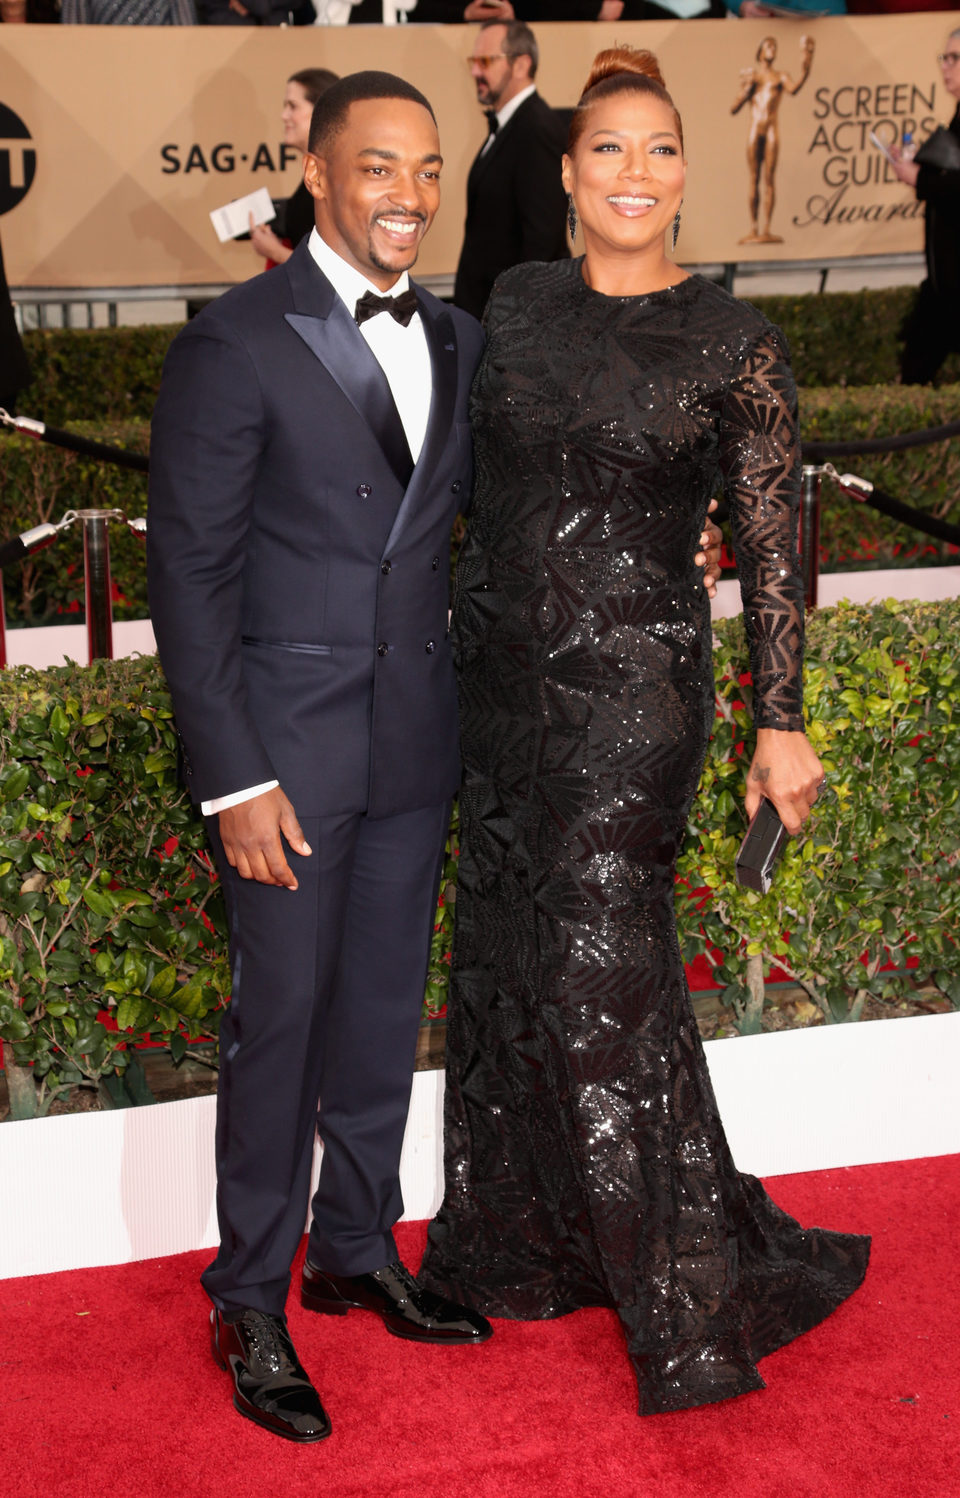 Anthony Mackie and Queen Latifah in SAG Awards 2016